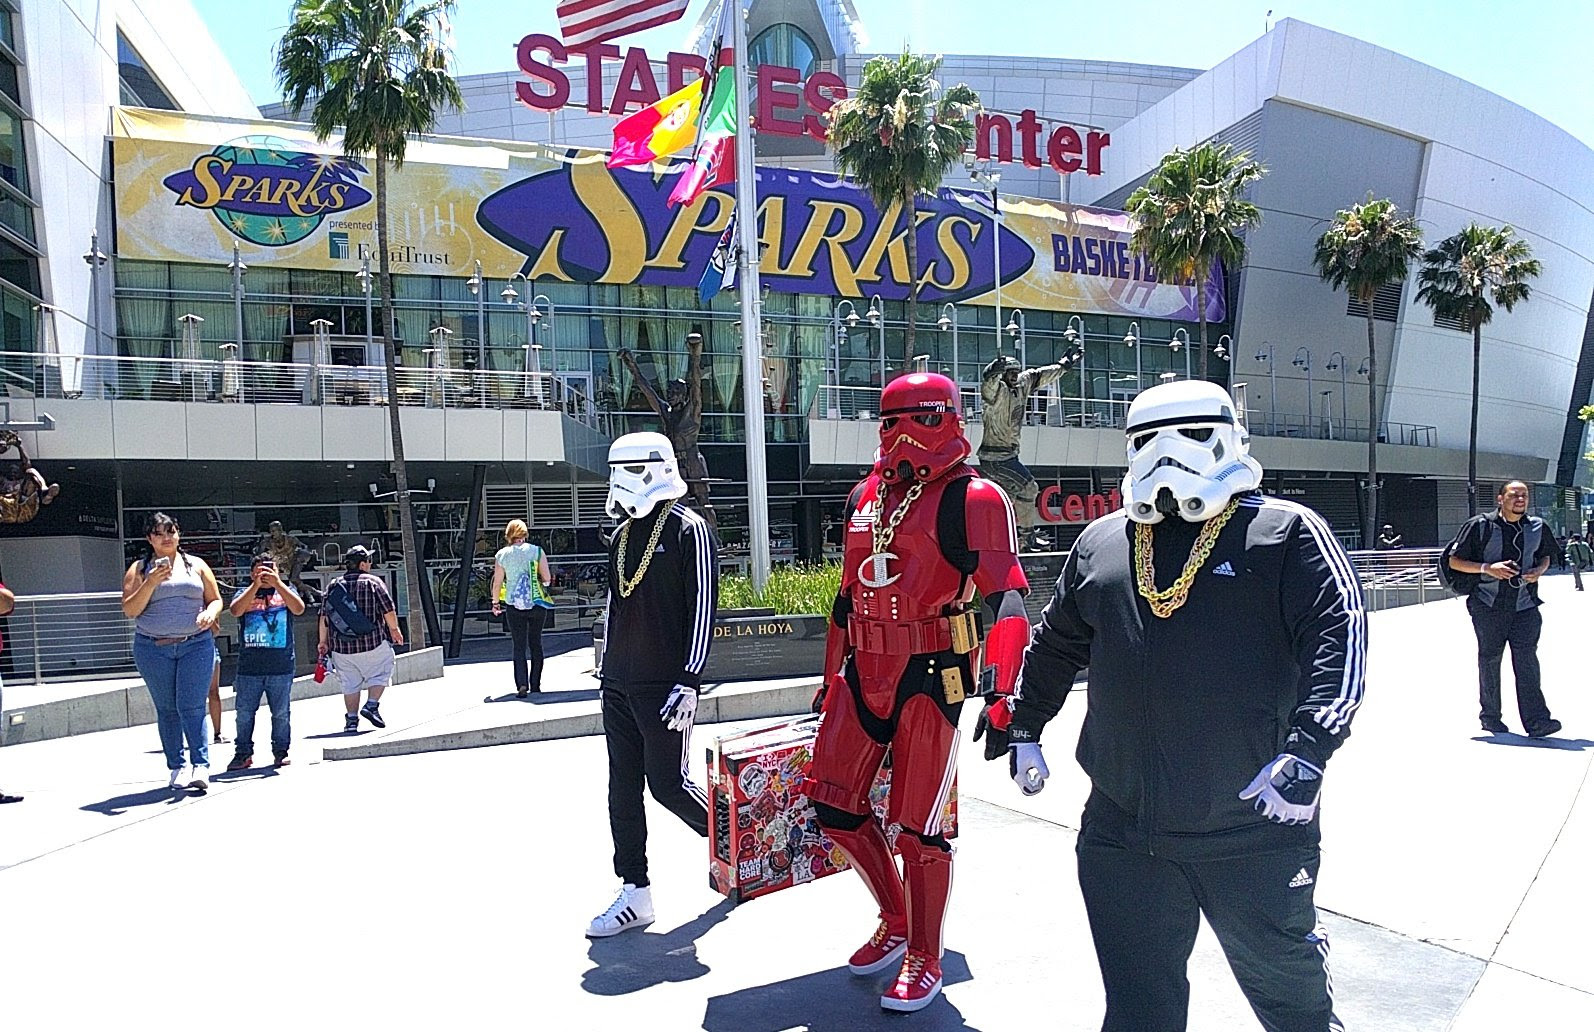 Gallery: Storm Troopers with boomboxes, dragons, and more randoms from E3 screenshot